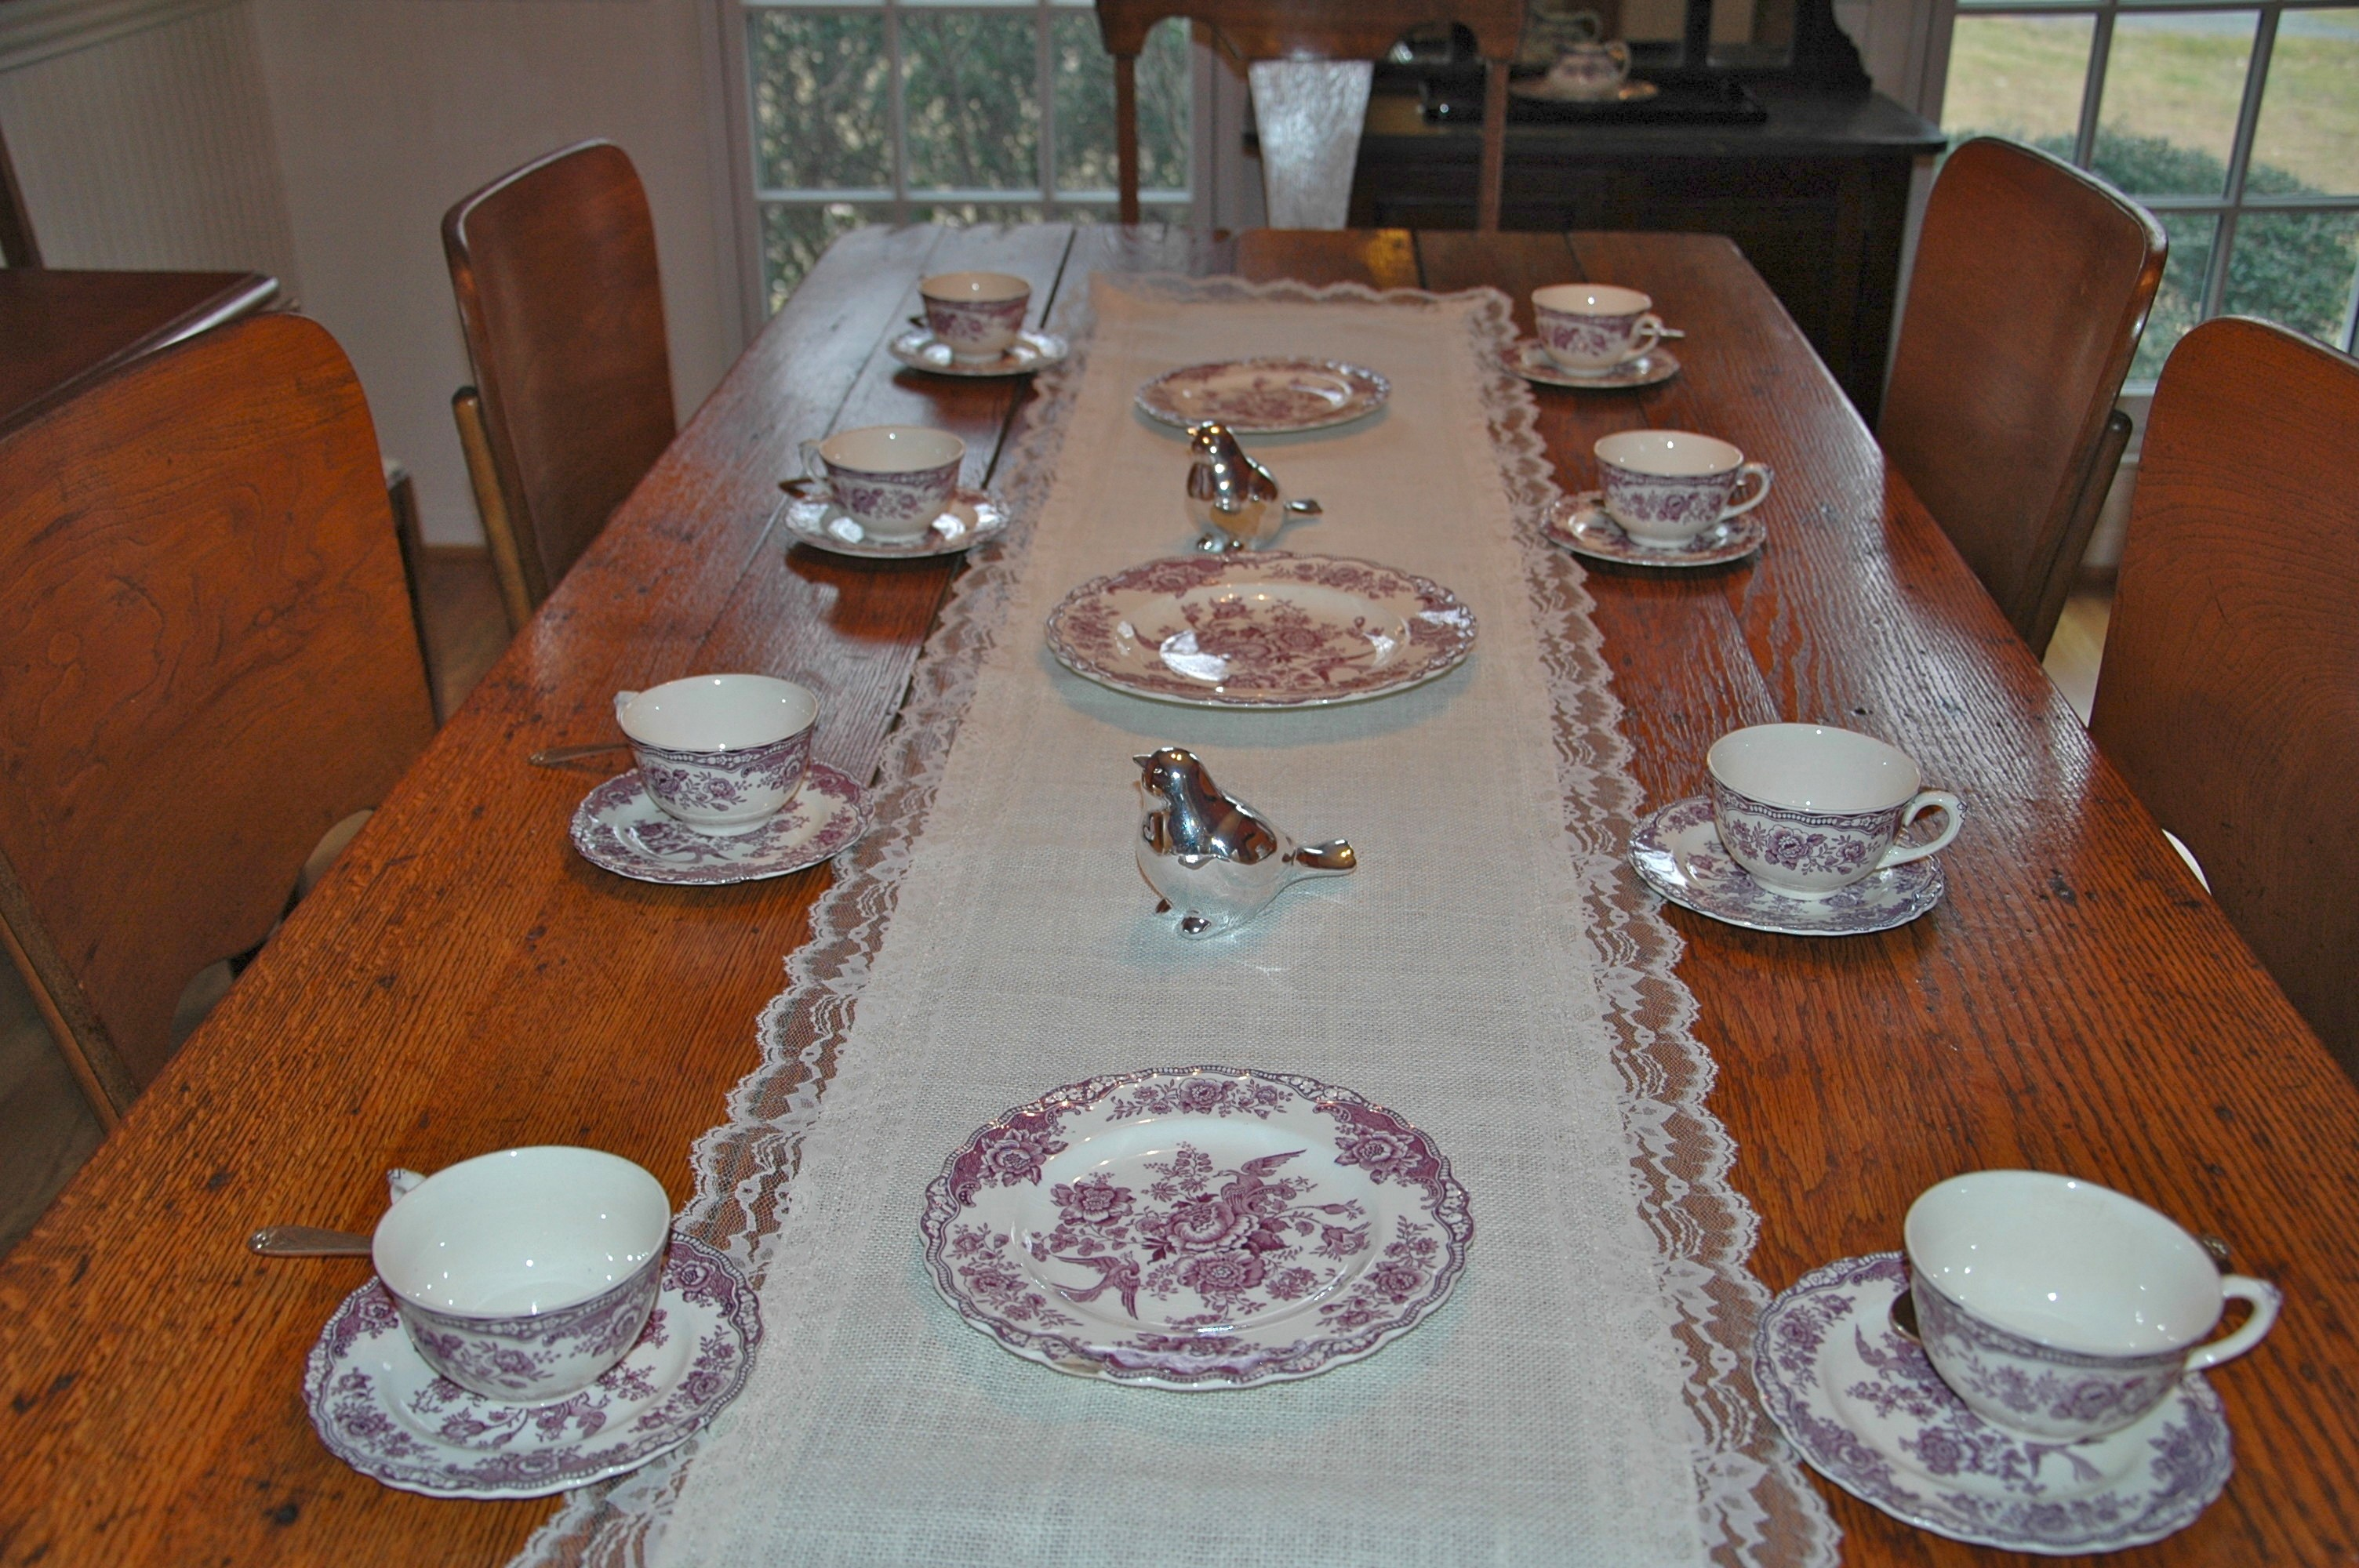 Burlap Table Runner with Lace 13 in x 72 in